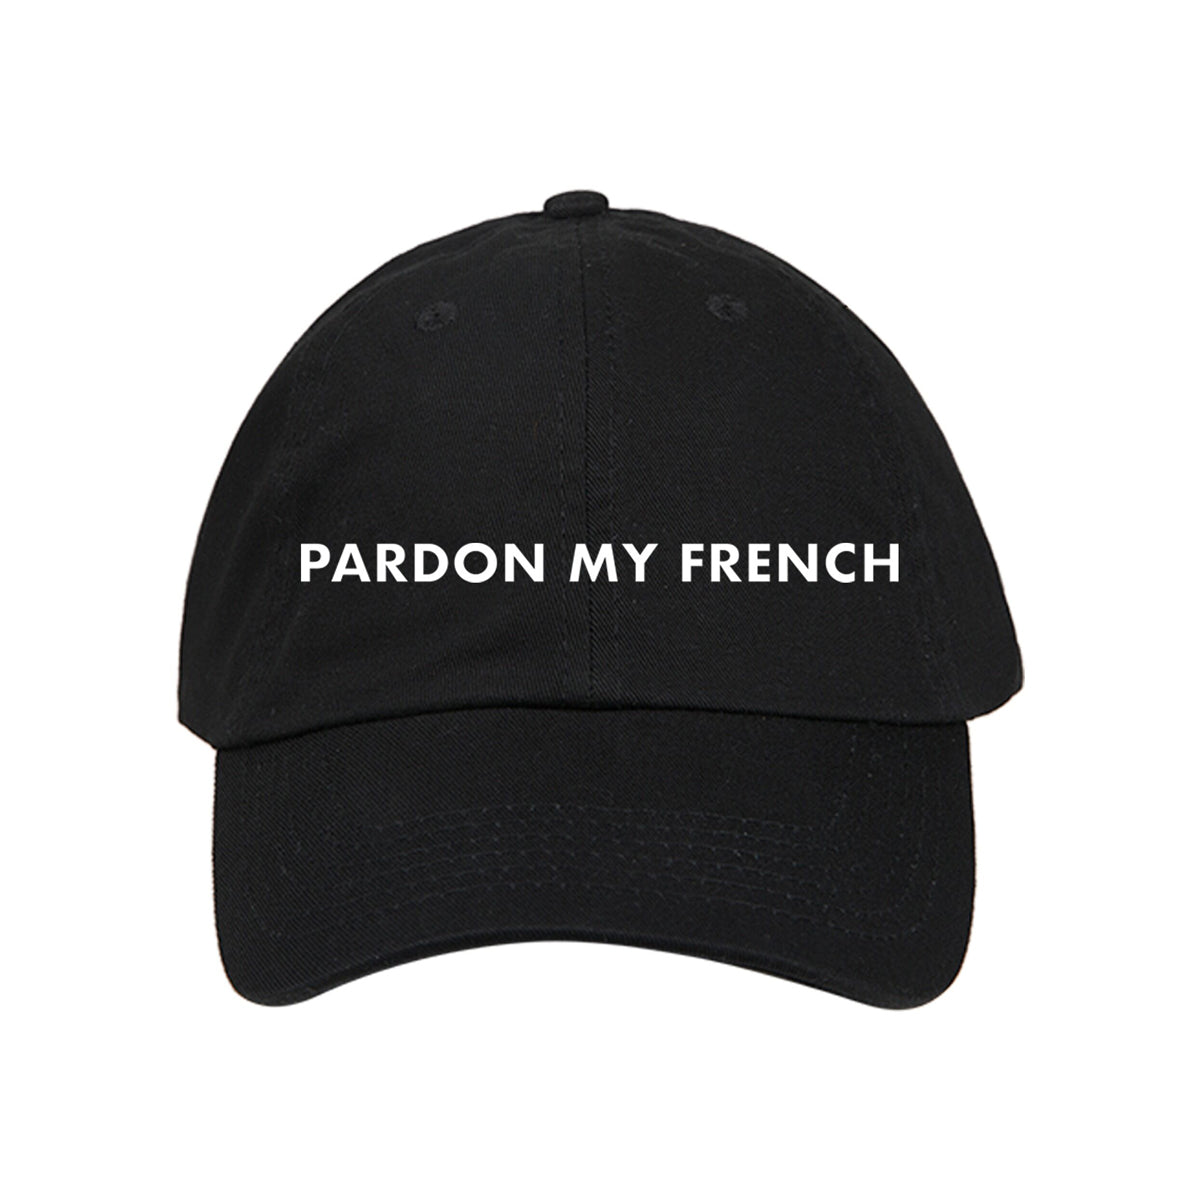 PARDON MY FRENCH BLACK CAP